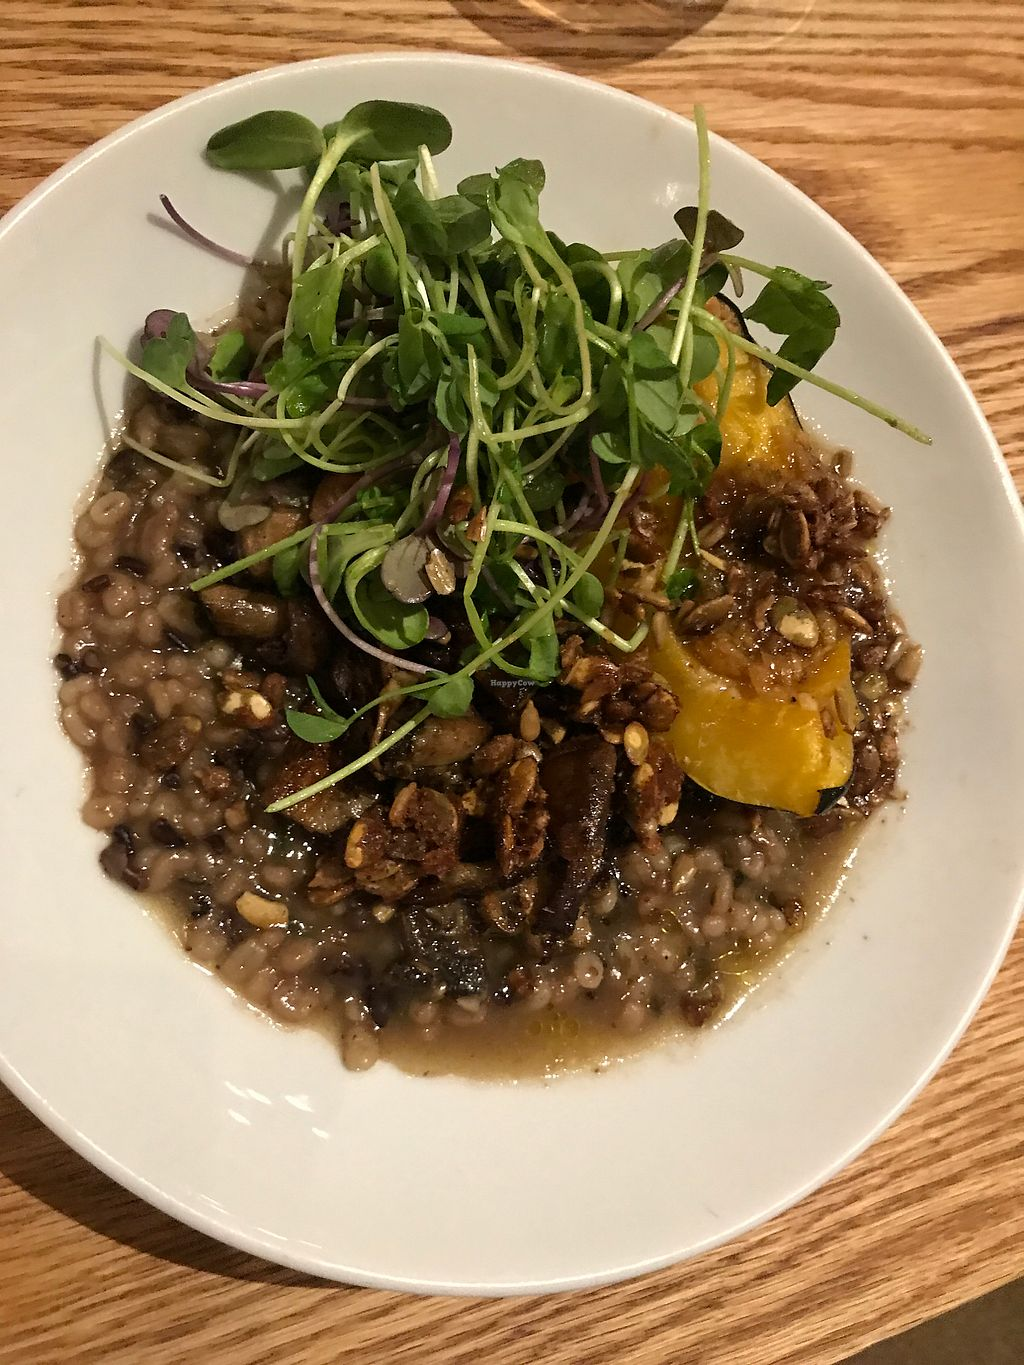 """Photo of Kerr Street Cafe  by <a href=""""/members/profile/Charliepenn"""">Charliepenn</a> <br/>Maple roasted acorn squash <br/> November 12, 2017  - <a href='/contact/abuse/image/104925/324937'>Report</a>"""